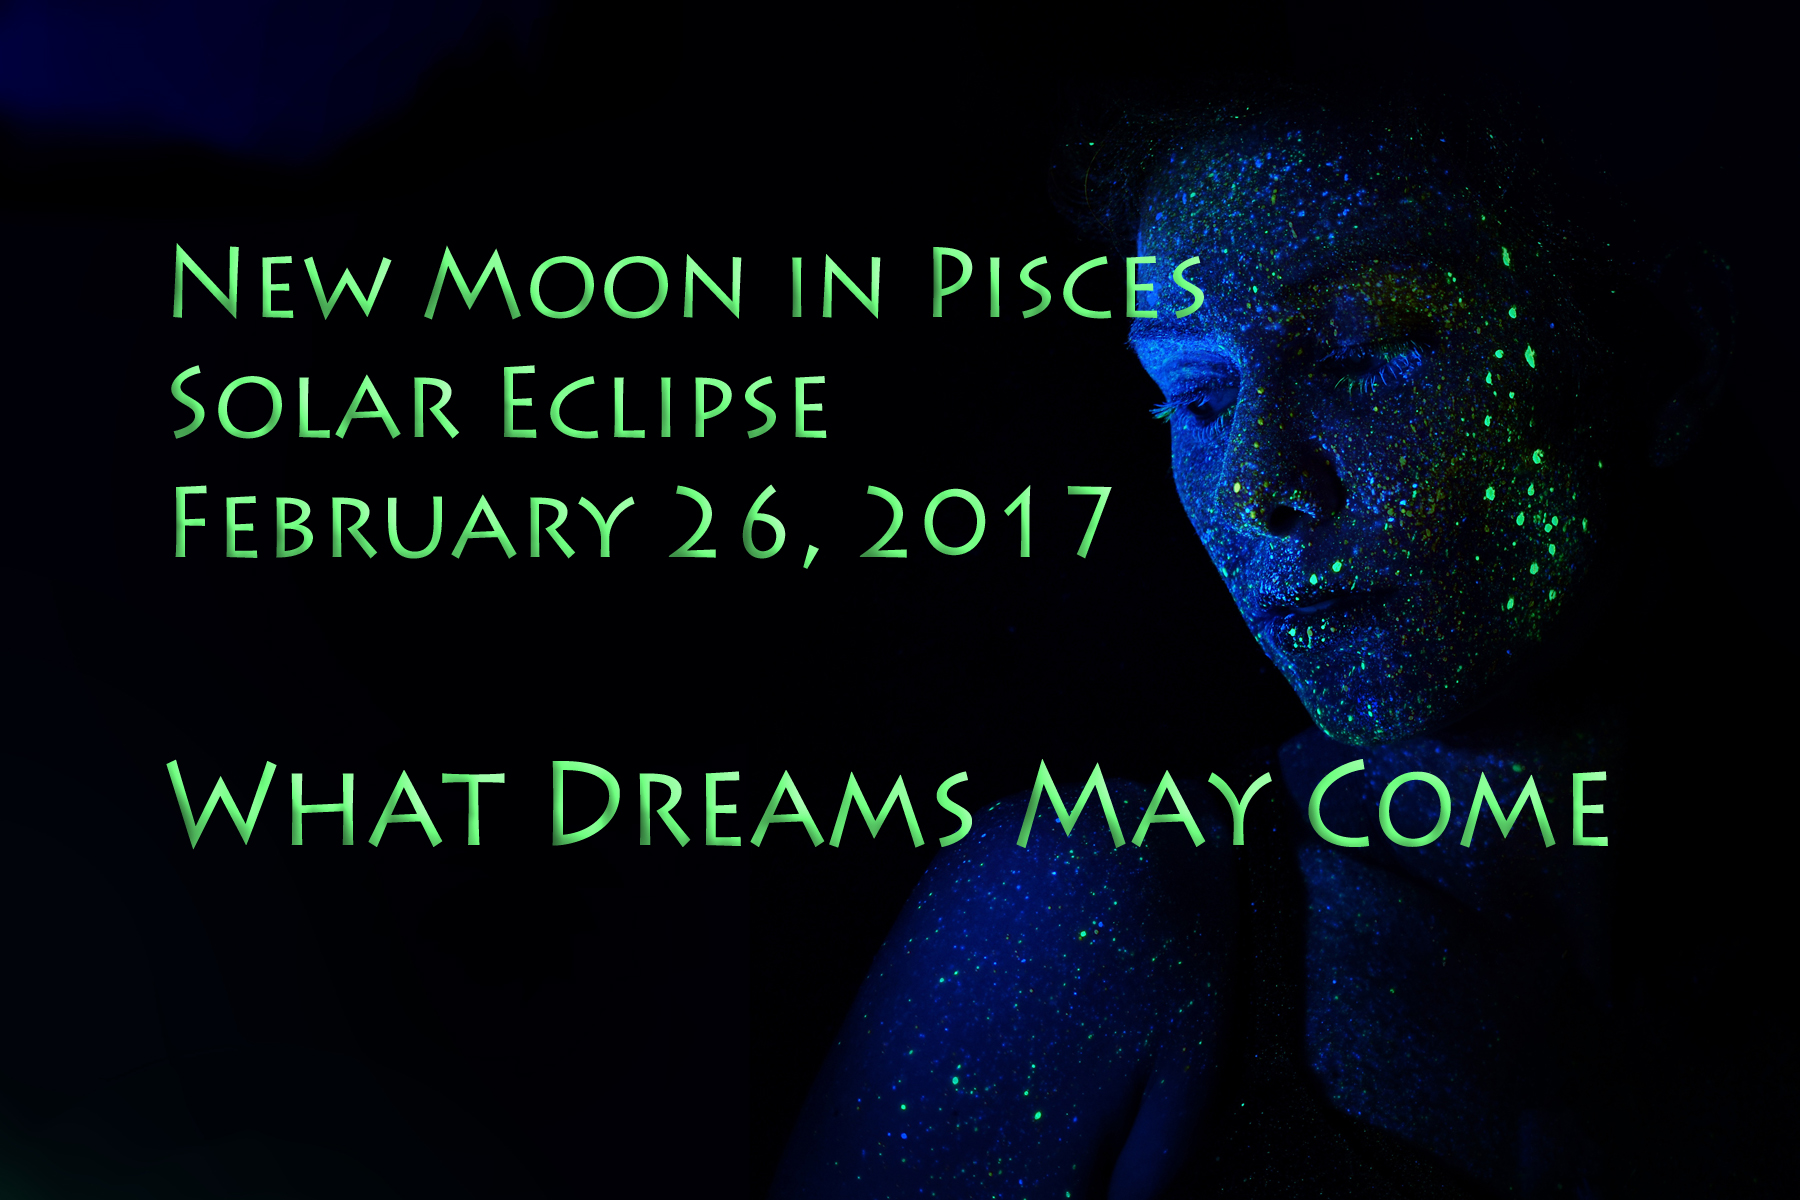 New Moon in Pisces & Solar Eclipse: What Dreams May Come